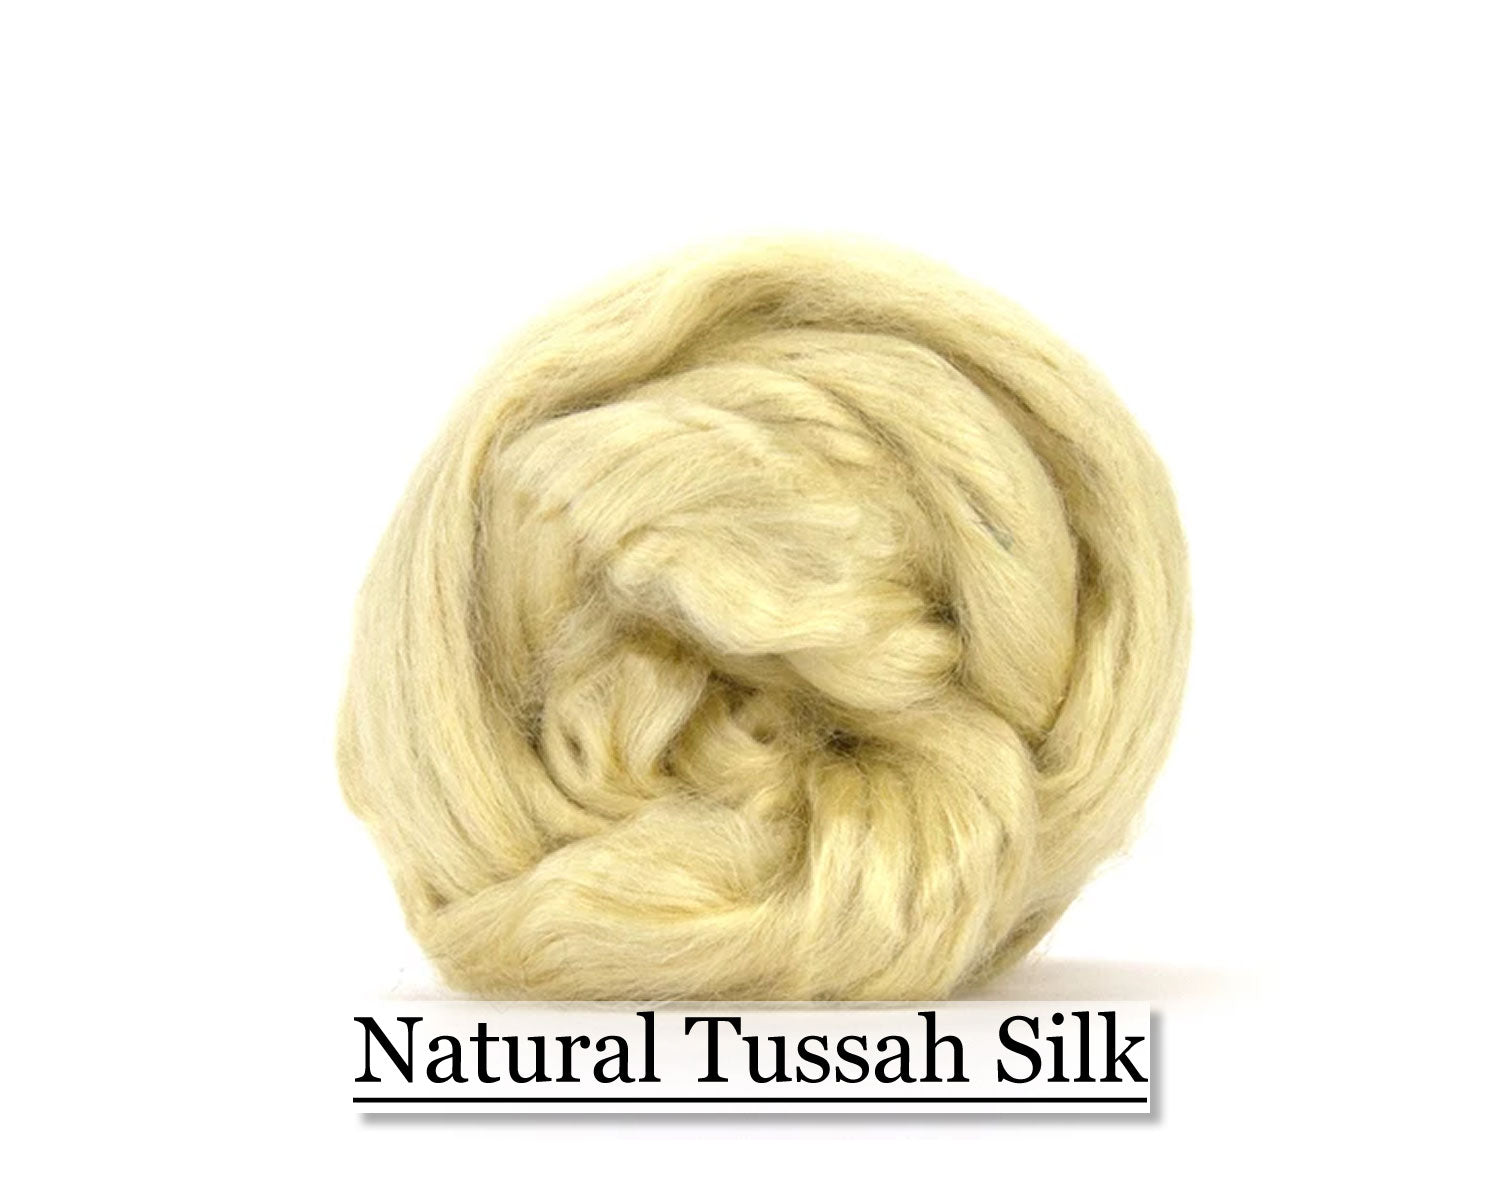 Natural Tussah Silk - 16oz